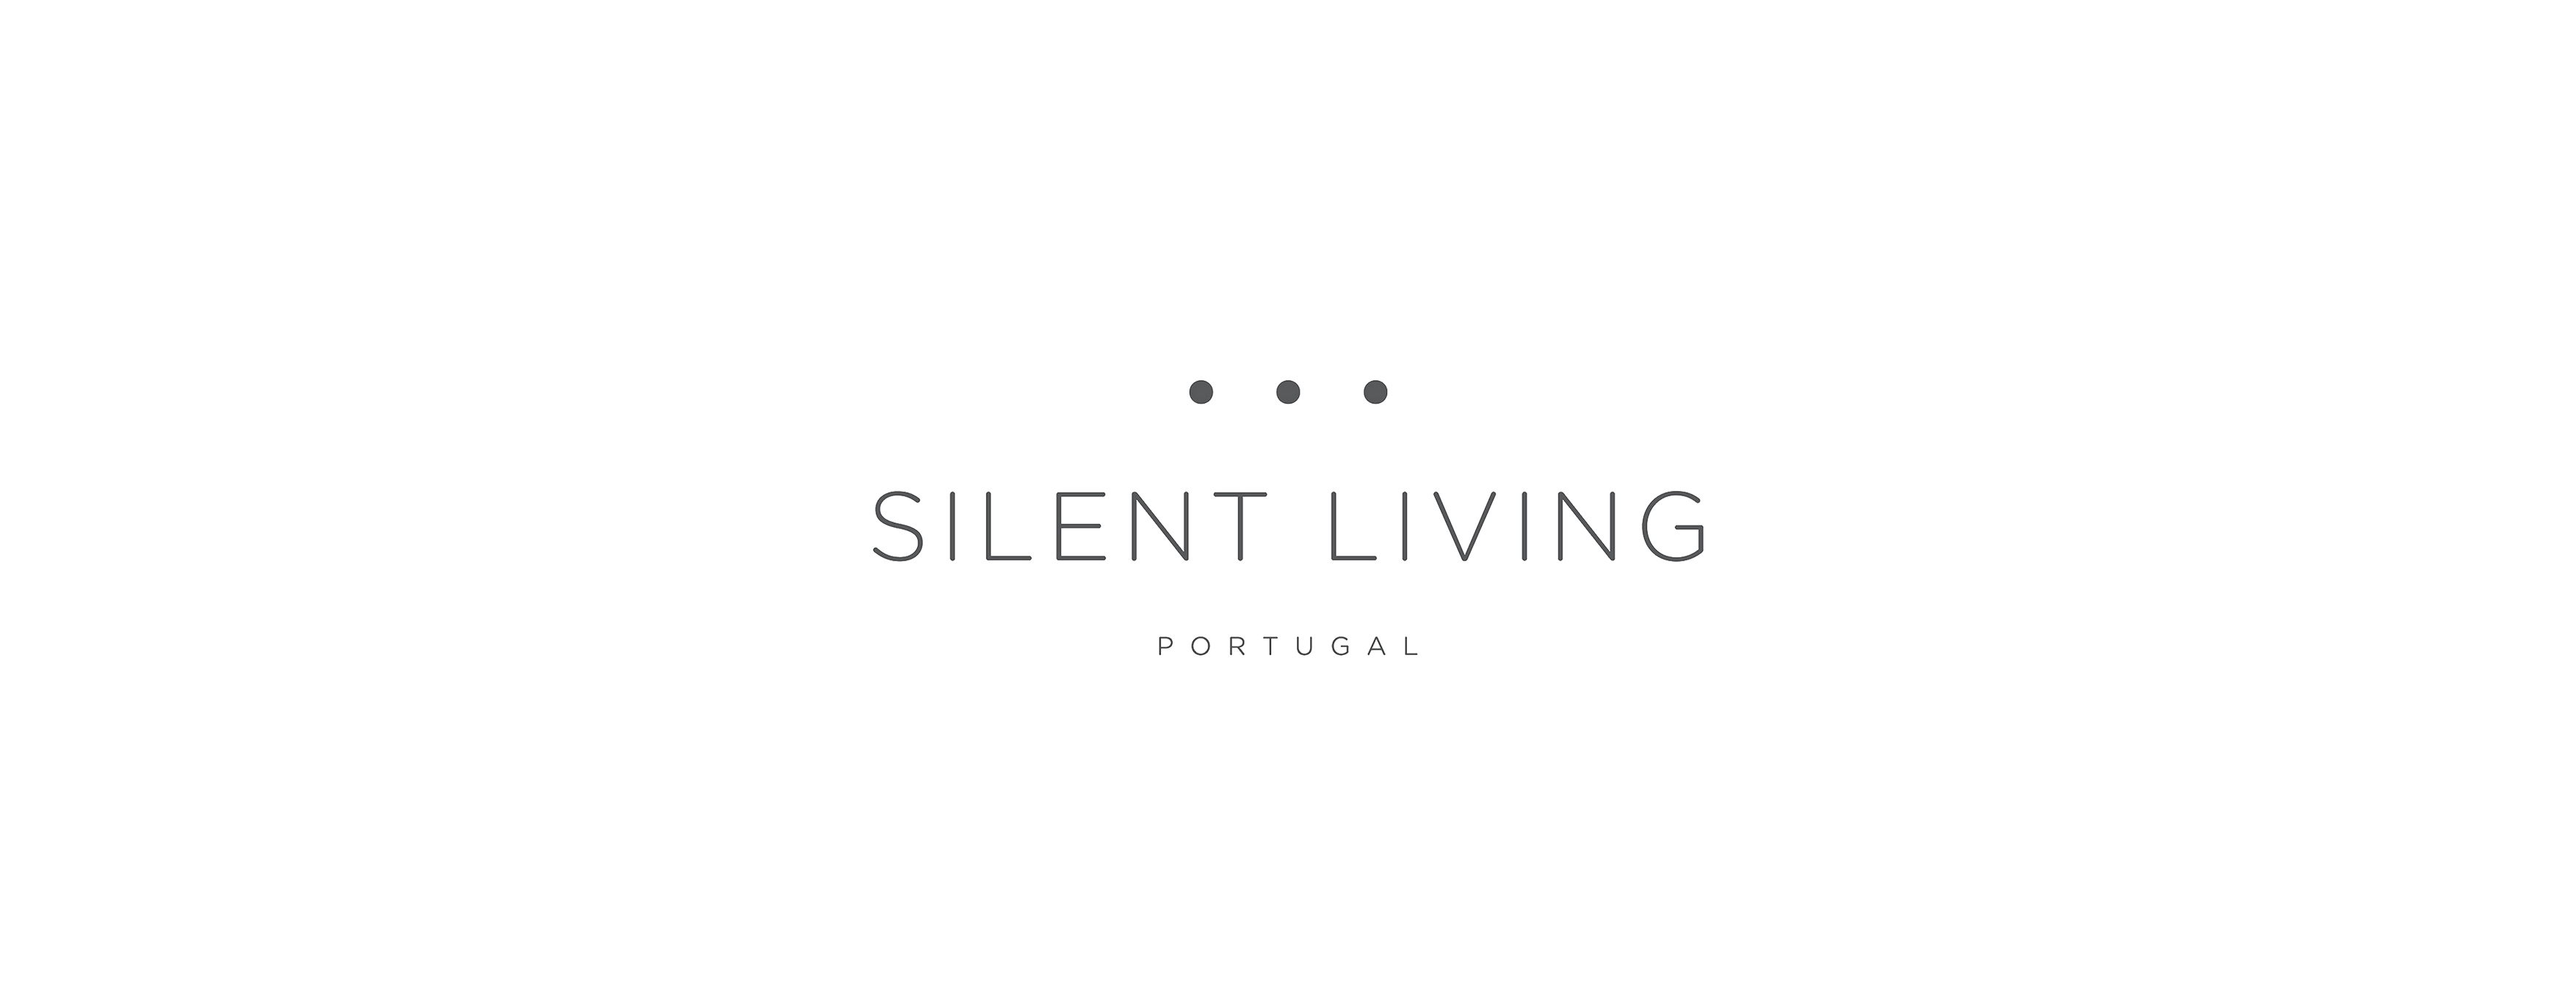 Pursuing Silent Living